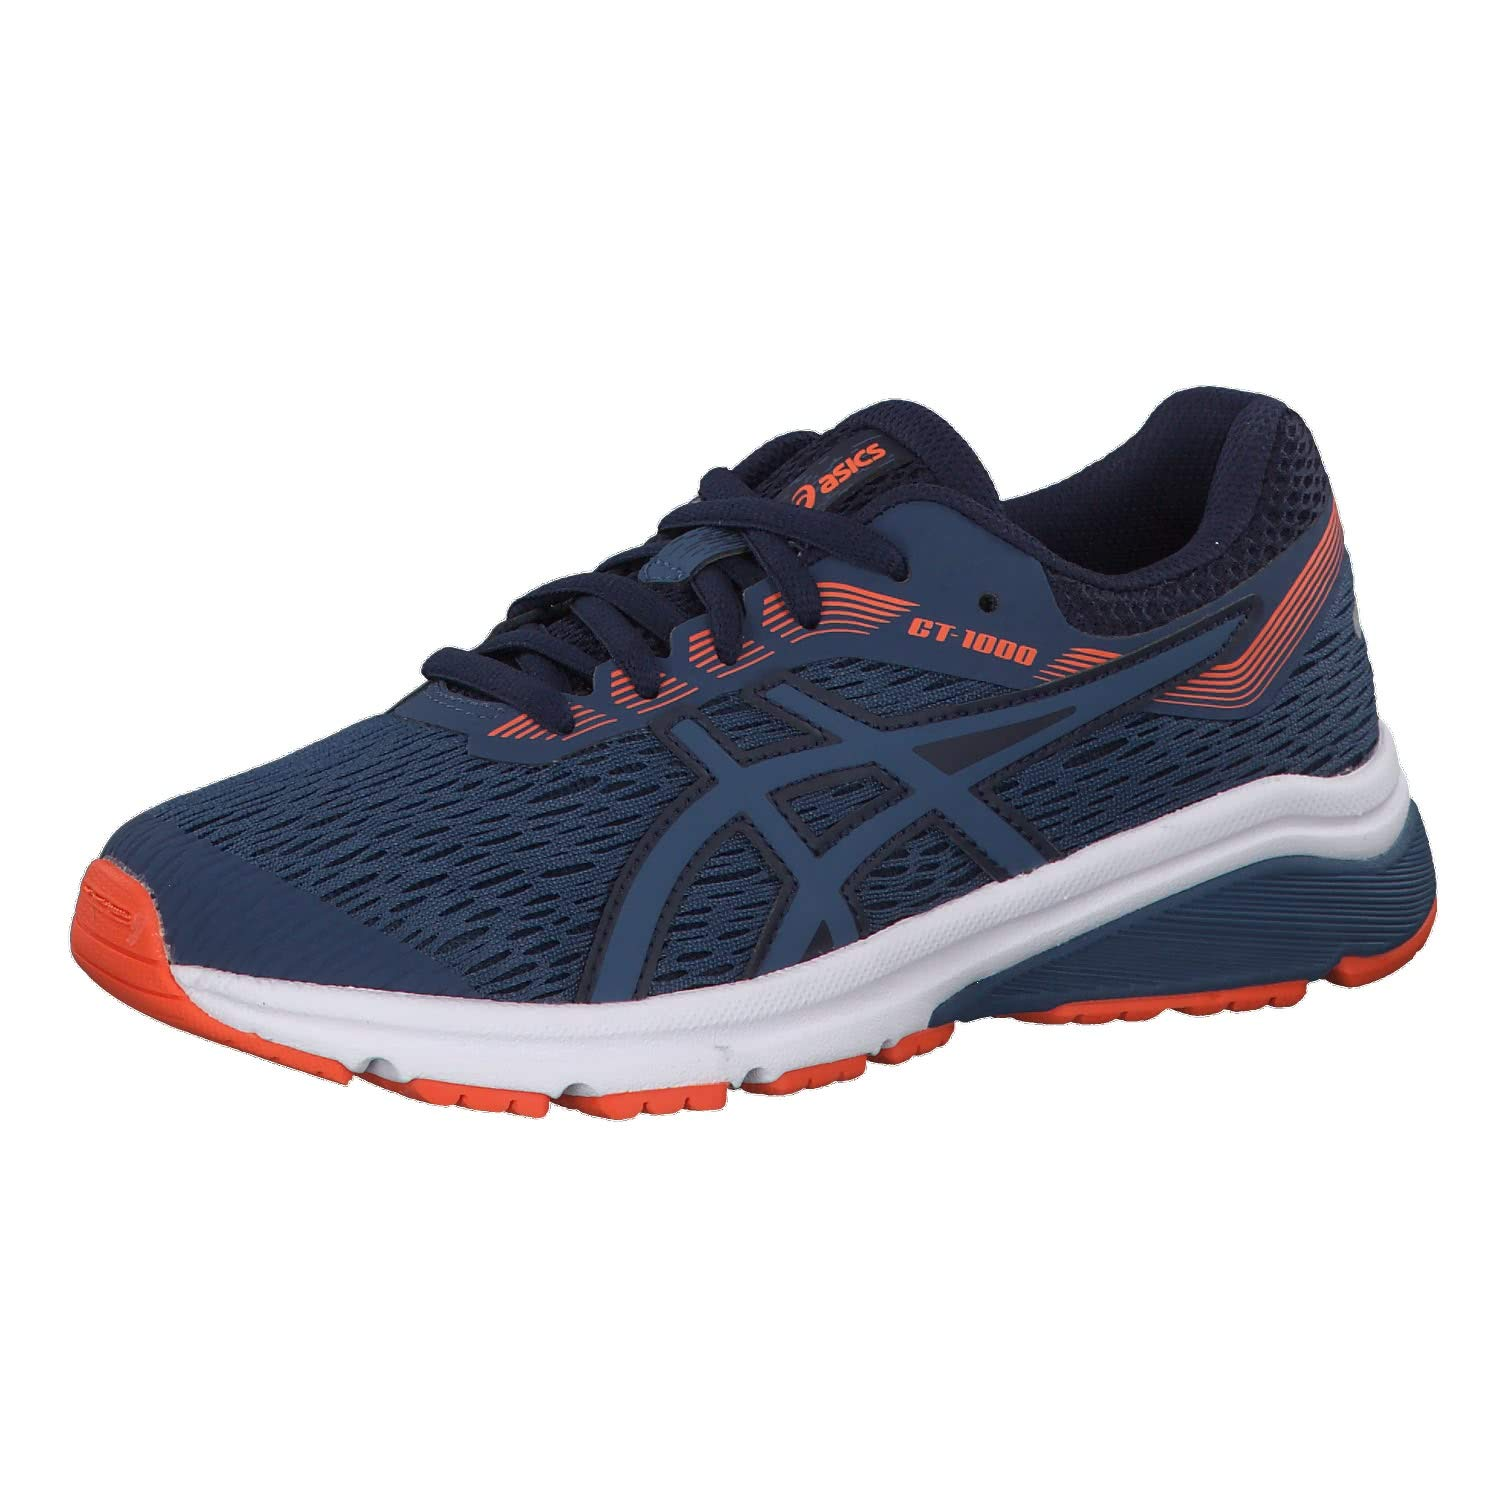 Buy ASICS Boy's Running Shoes at Amazon.in